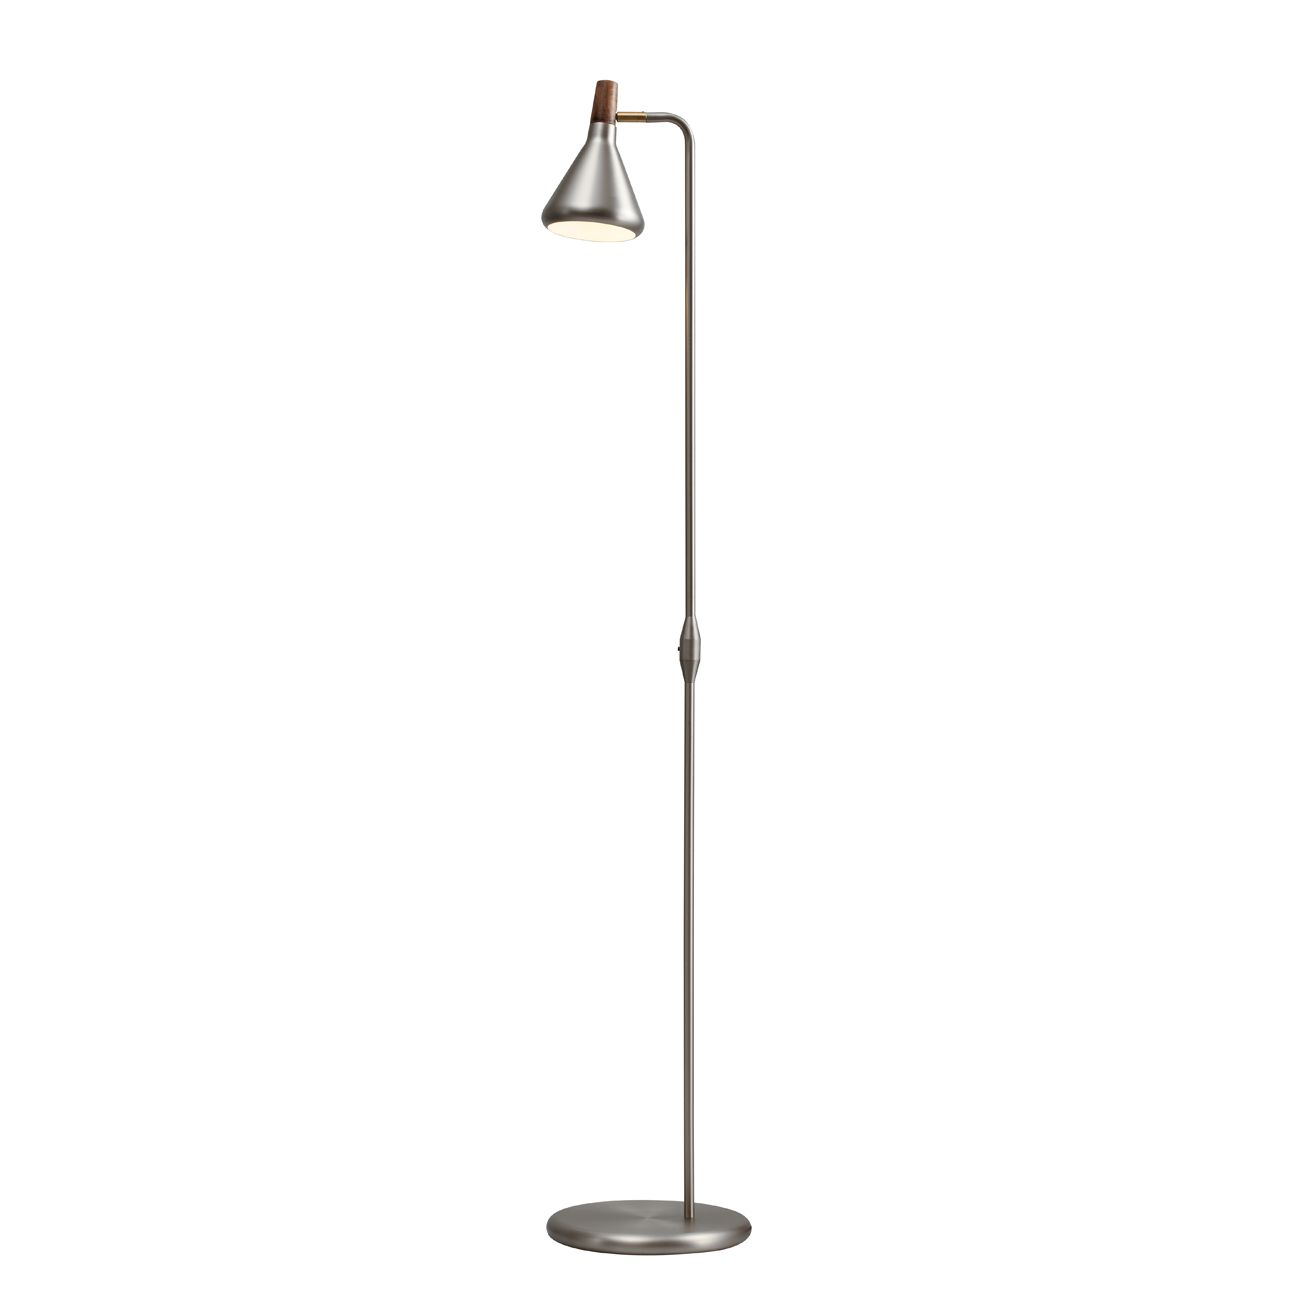 EEK A++, Stehleuchte Float - Metall Silber - 1-flammig, Nordlux